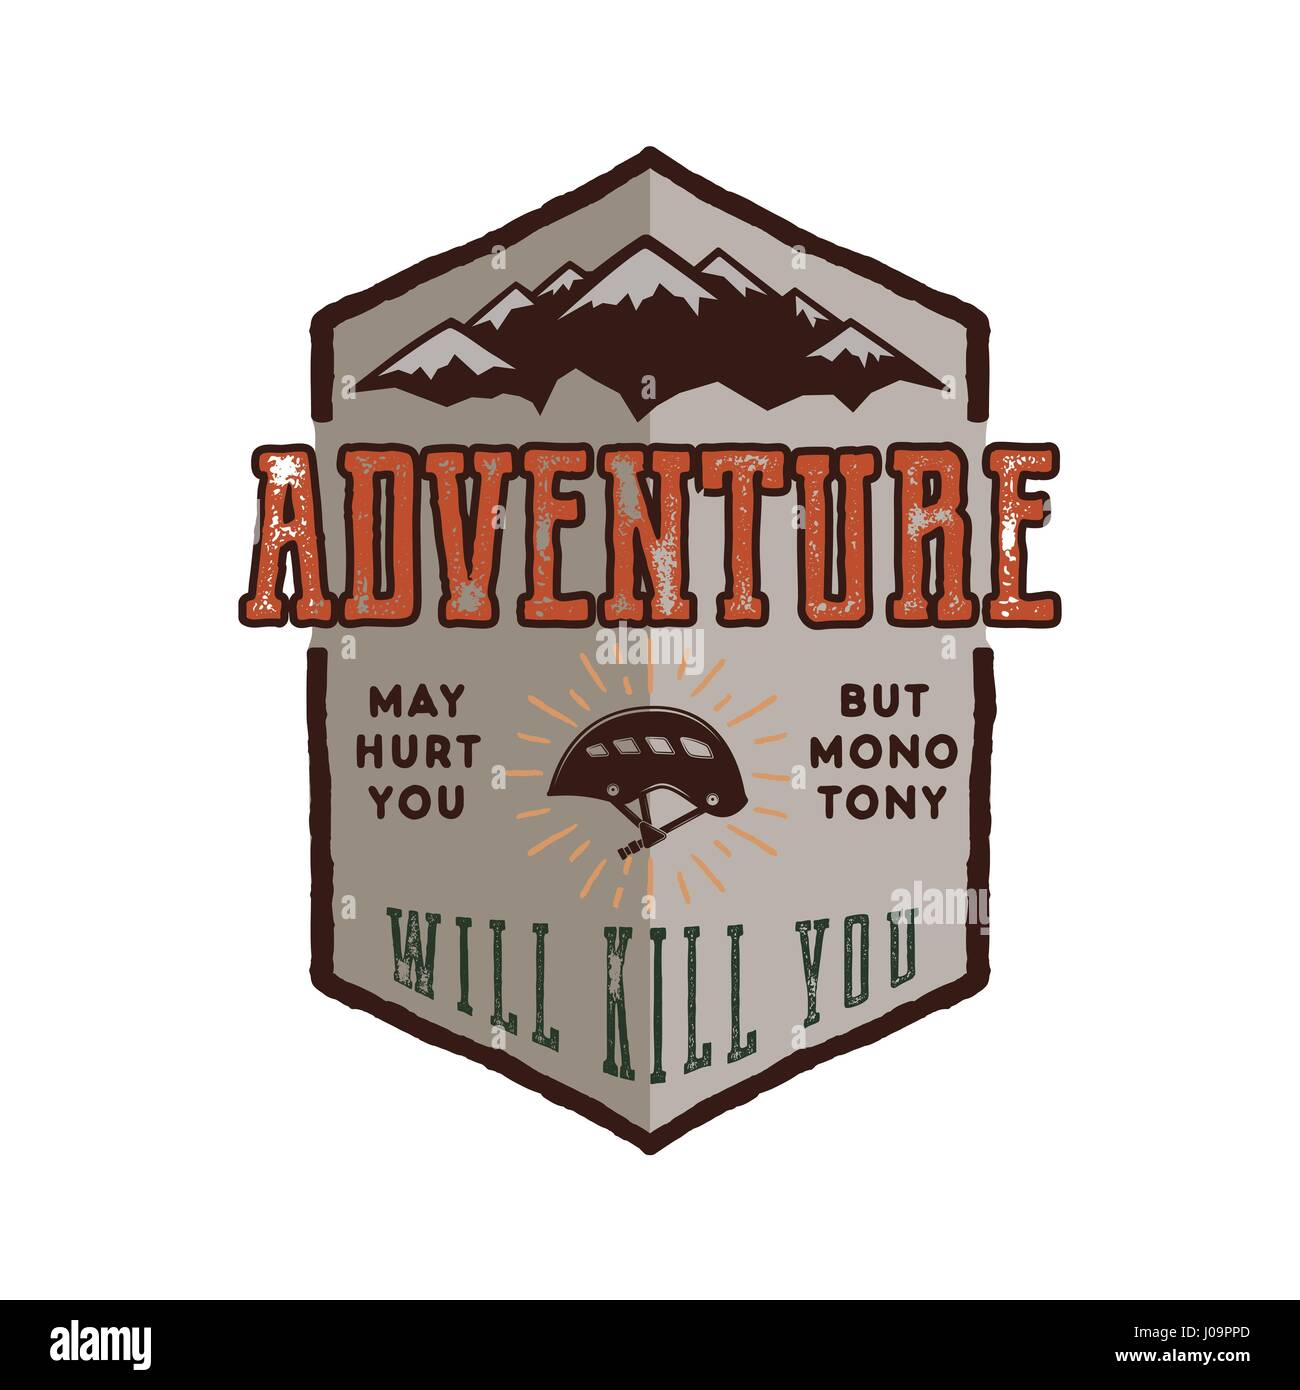 Vintage adventure Hand drawn label design. Adventure May Hurt You sign and outdoor activity symbols - mountains, - Stock Image